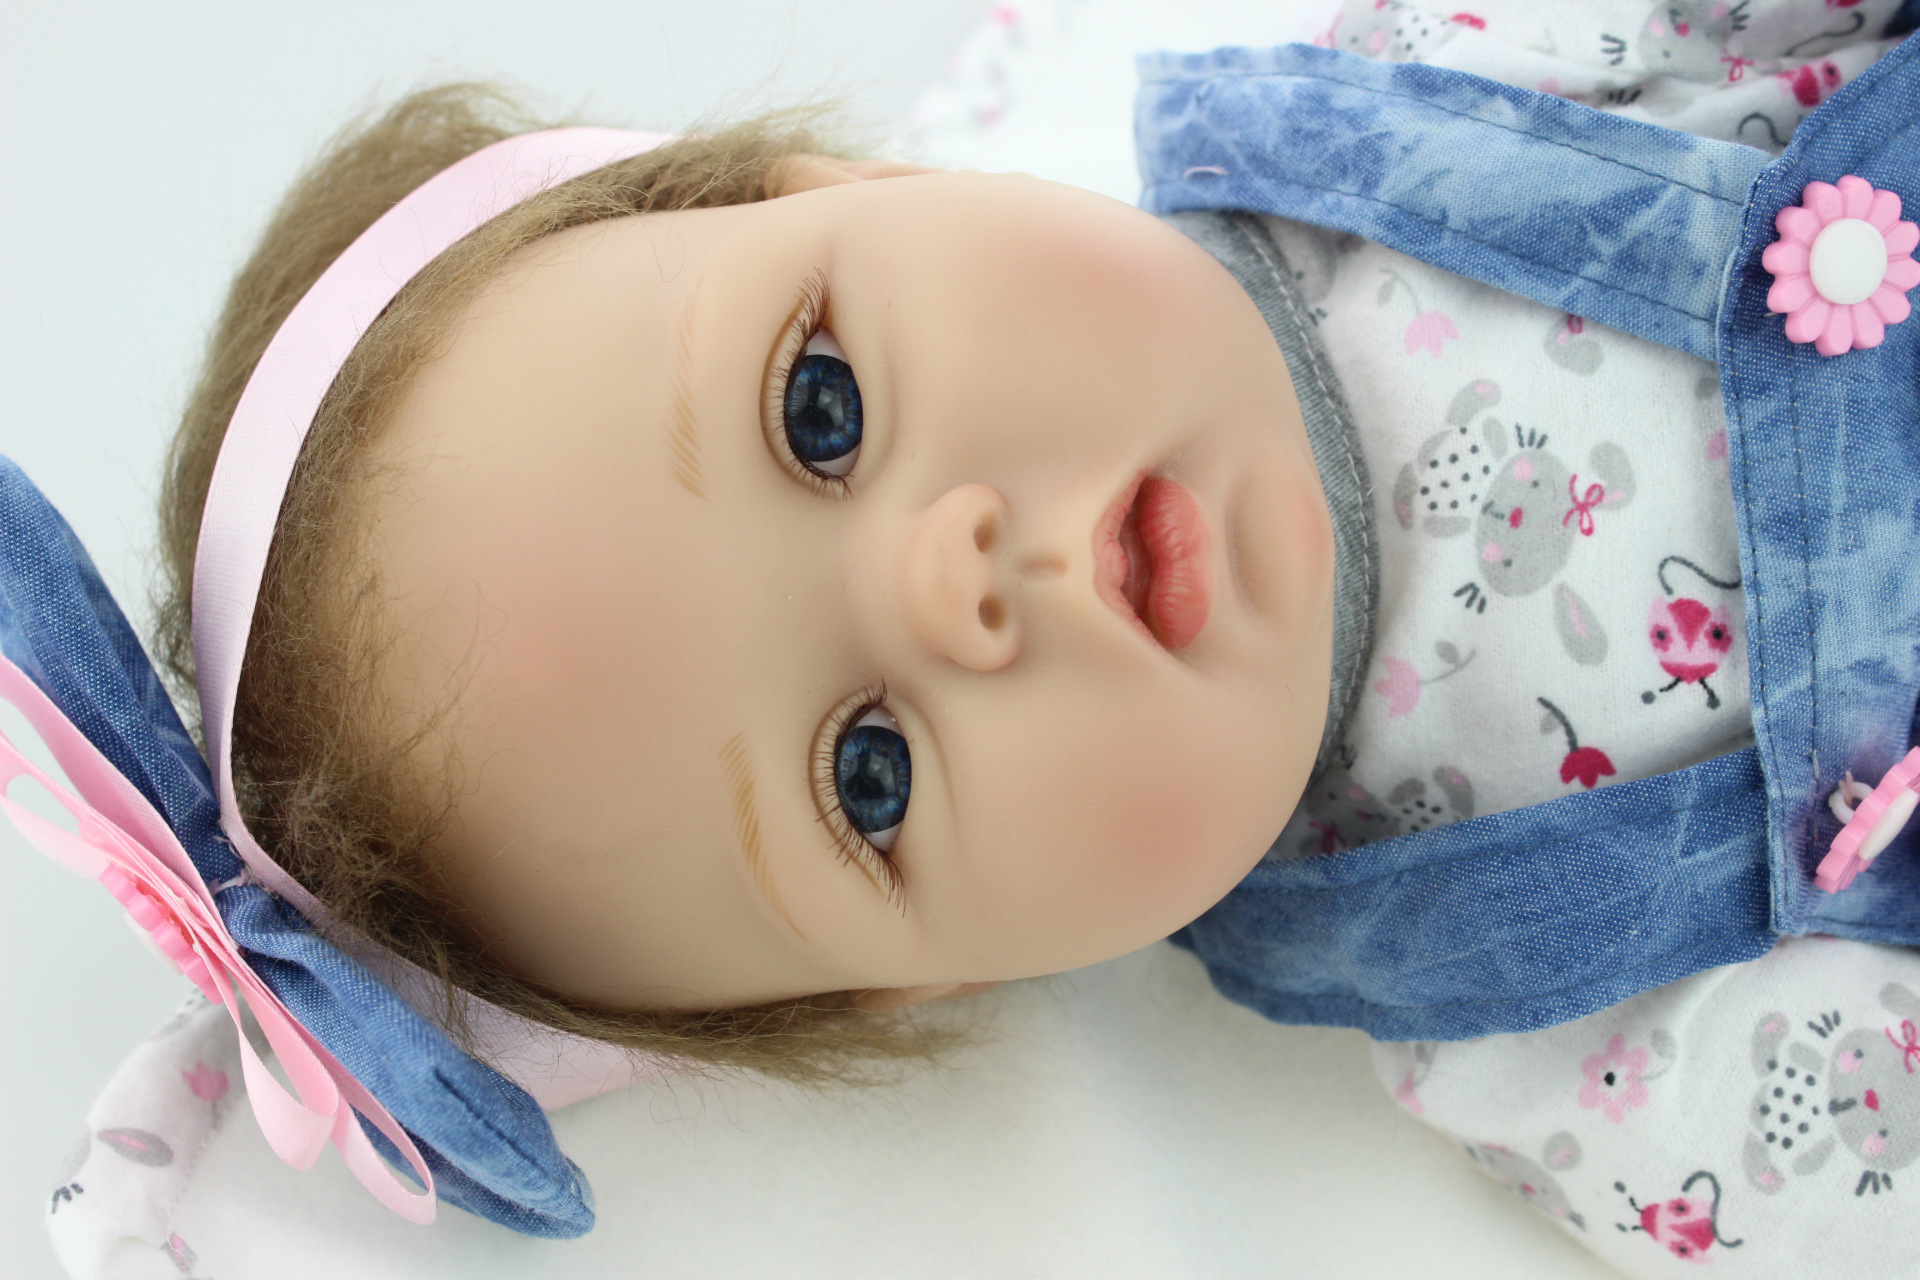 reborn <font><b>toddler</b></font> girl high quality reborn <font><b>toddler</b></font> <font><b>princess</b></font> girl doll Silicone vinyl adorable Lifelike Baby Bonecas girl bebe doll image